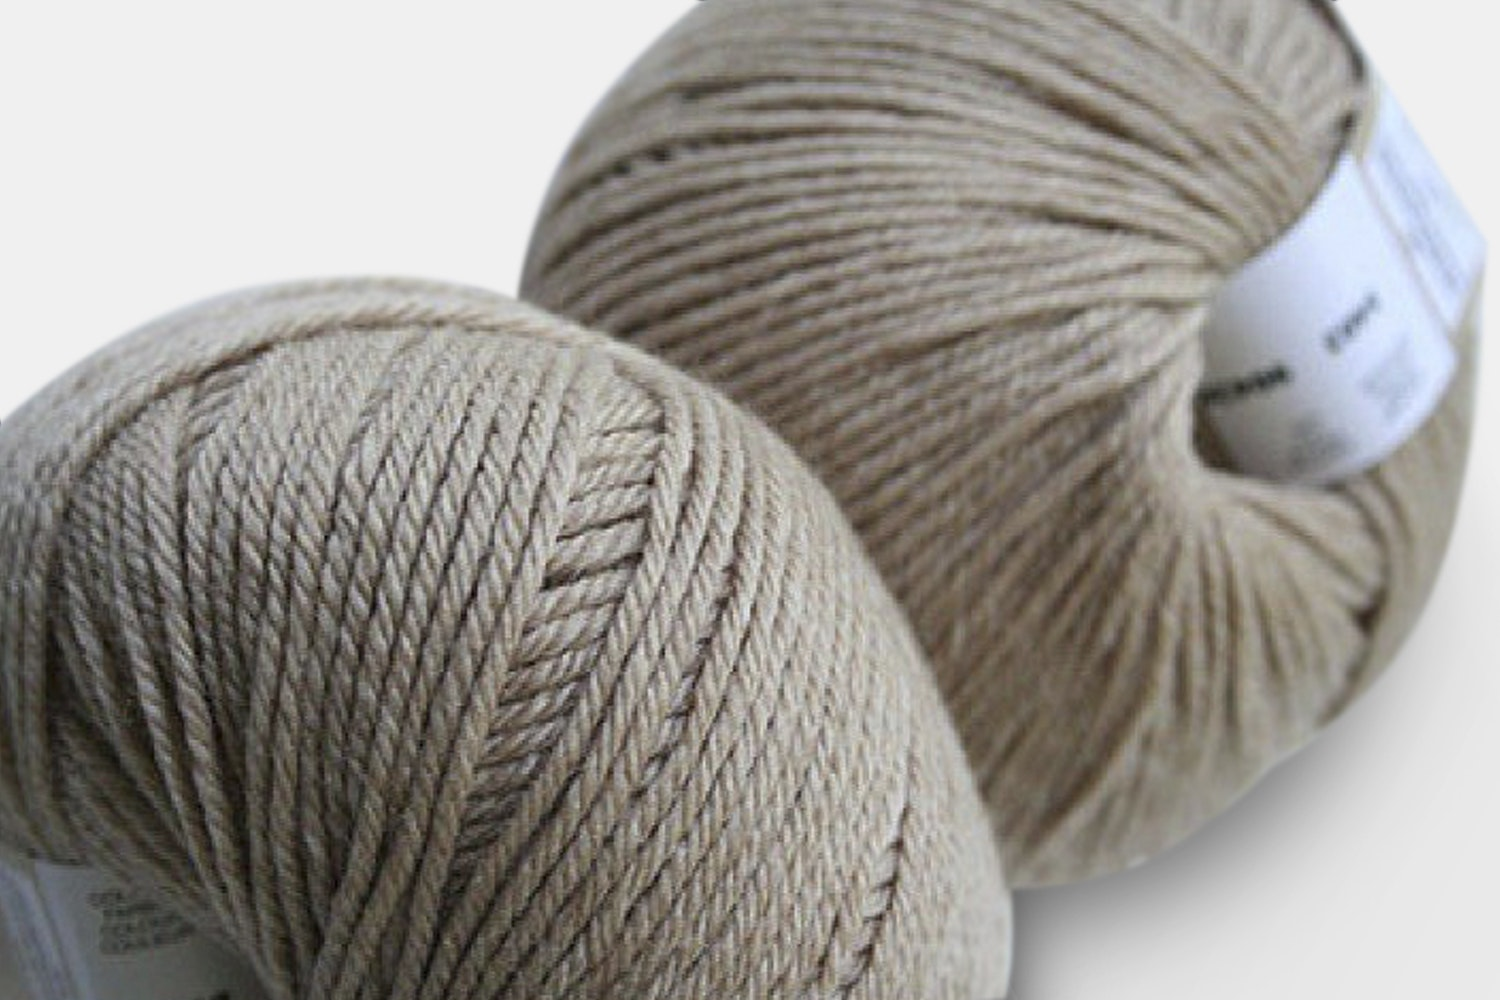 Camel Hair yarn by Lana Gatto (2-Pack)